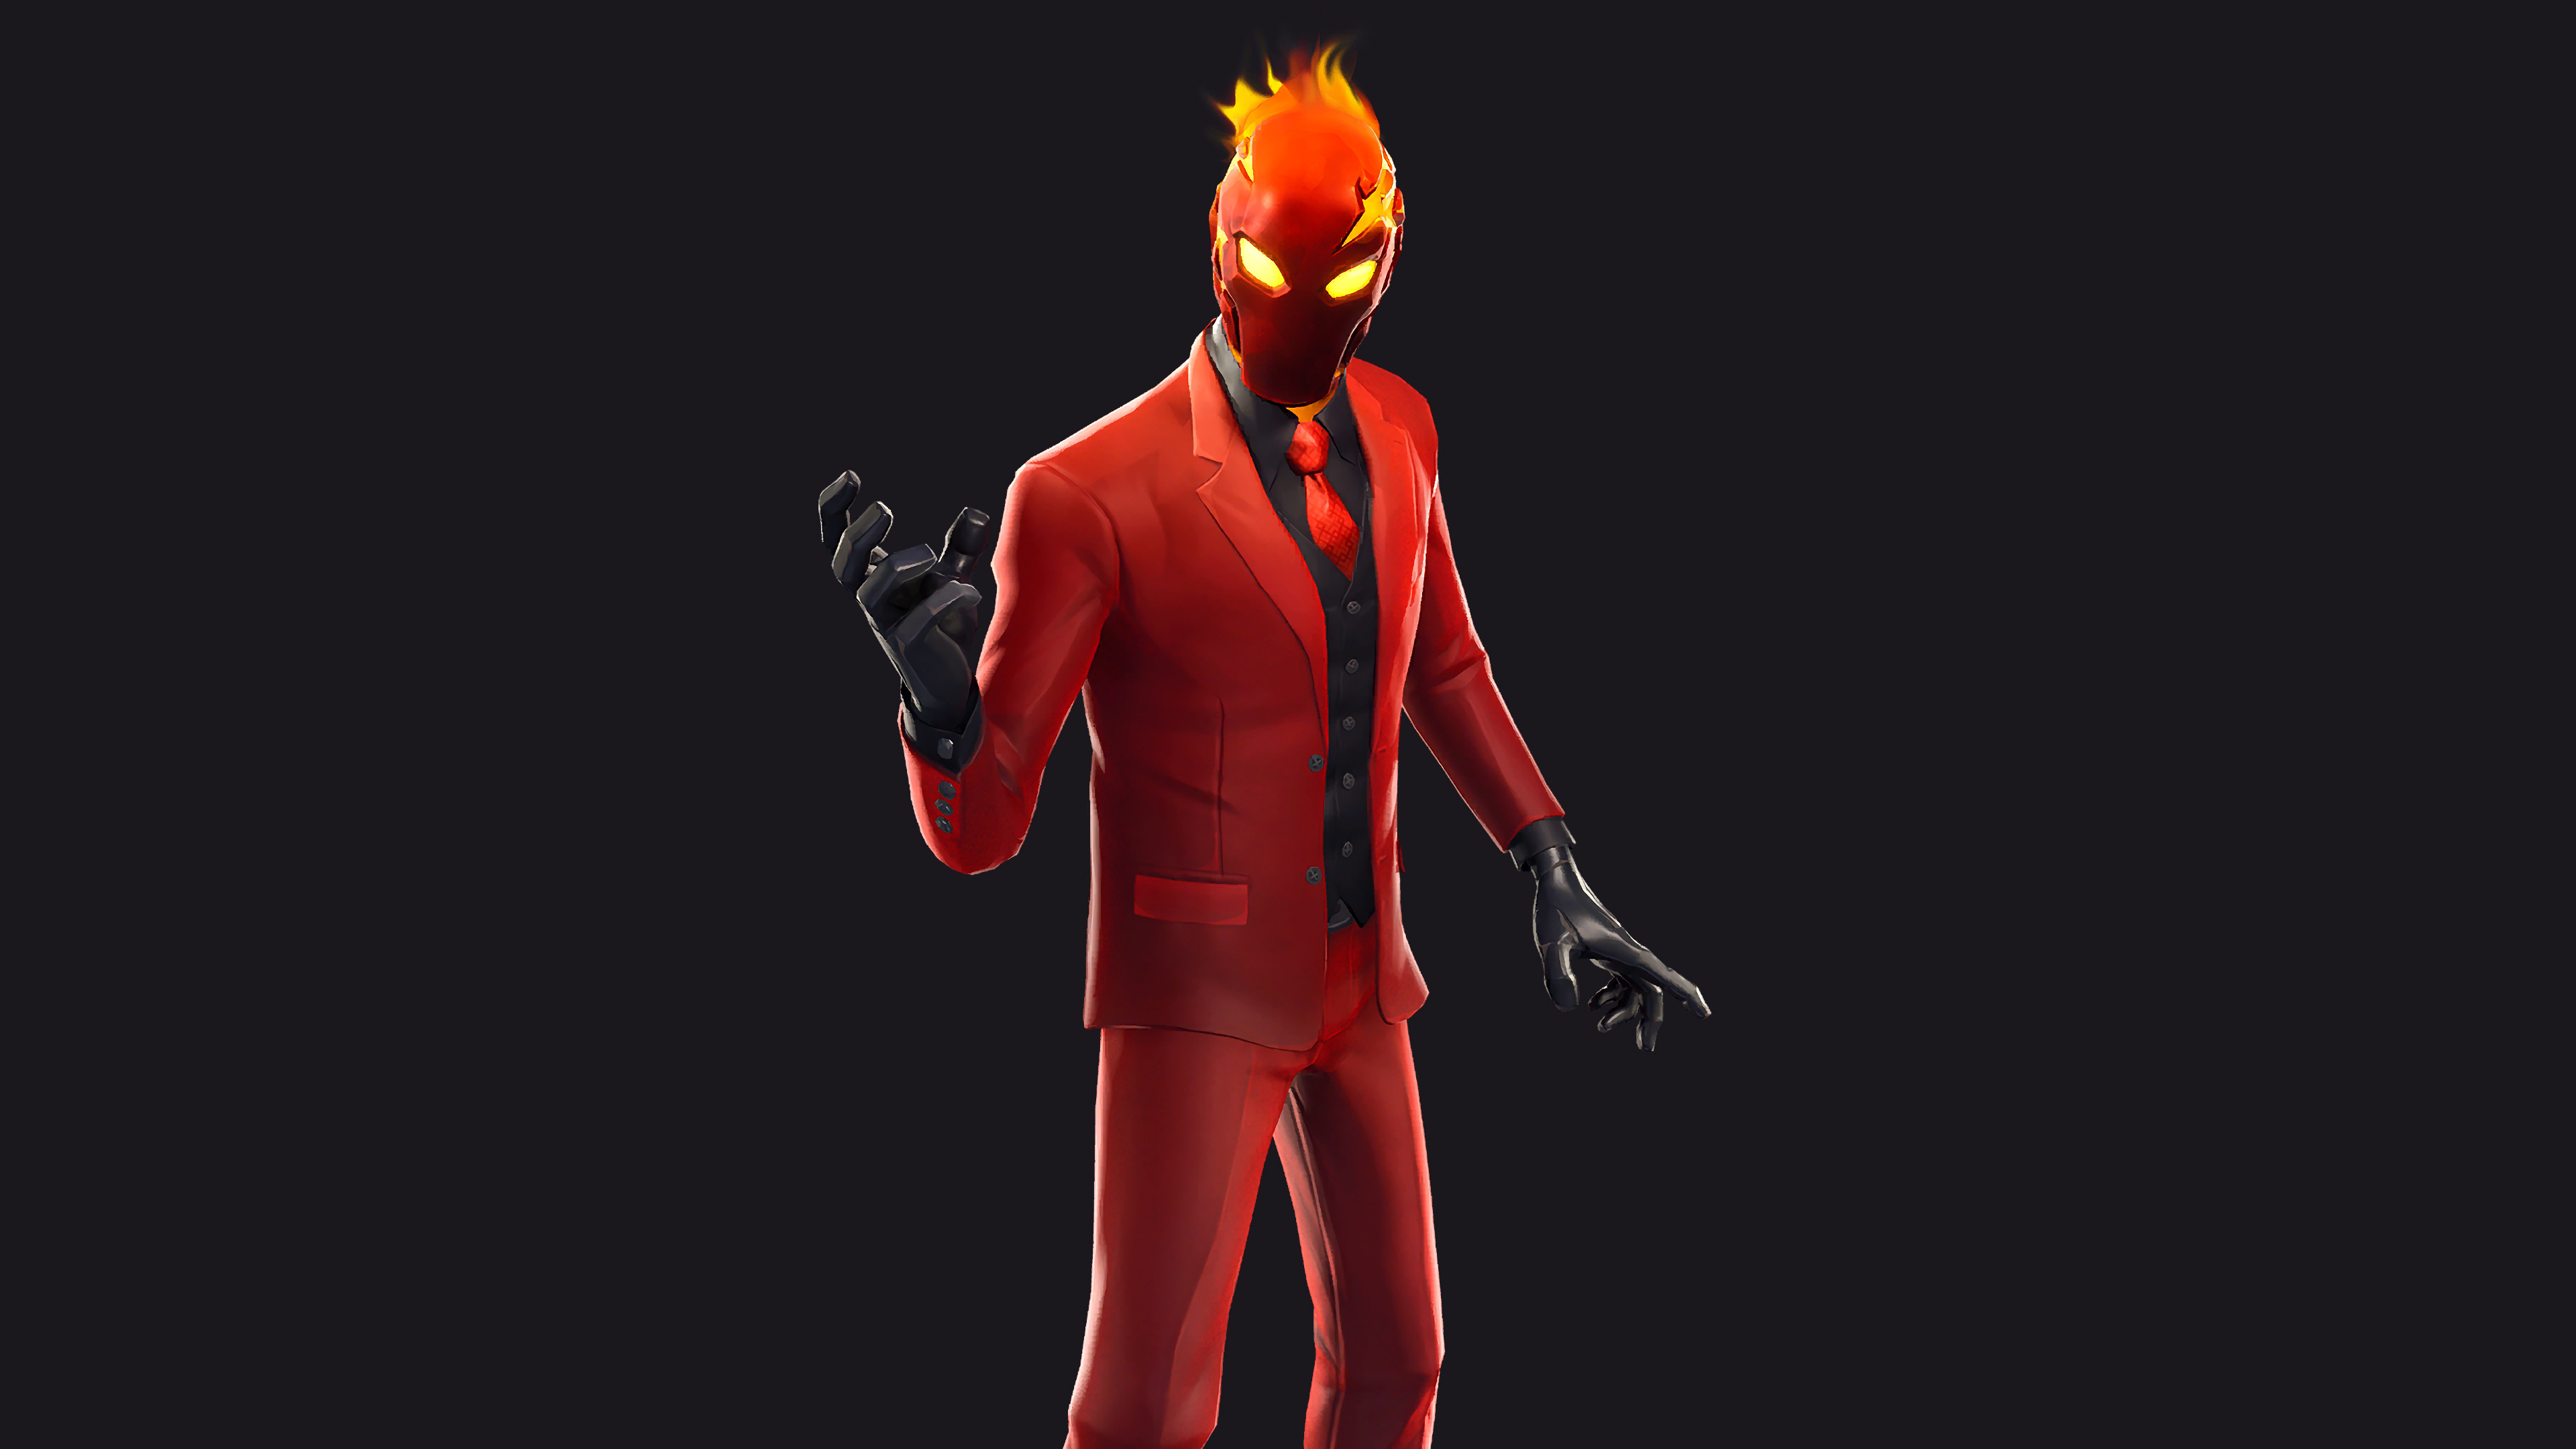 2560x1600 Inferno Fortnite 2560x1600 Resolution Wallpaper Hd Games 4k Wallpapers Images Photos And Background